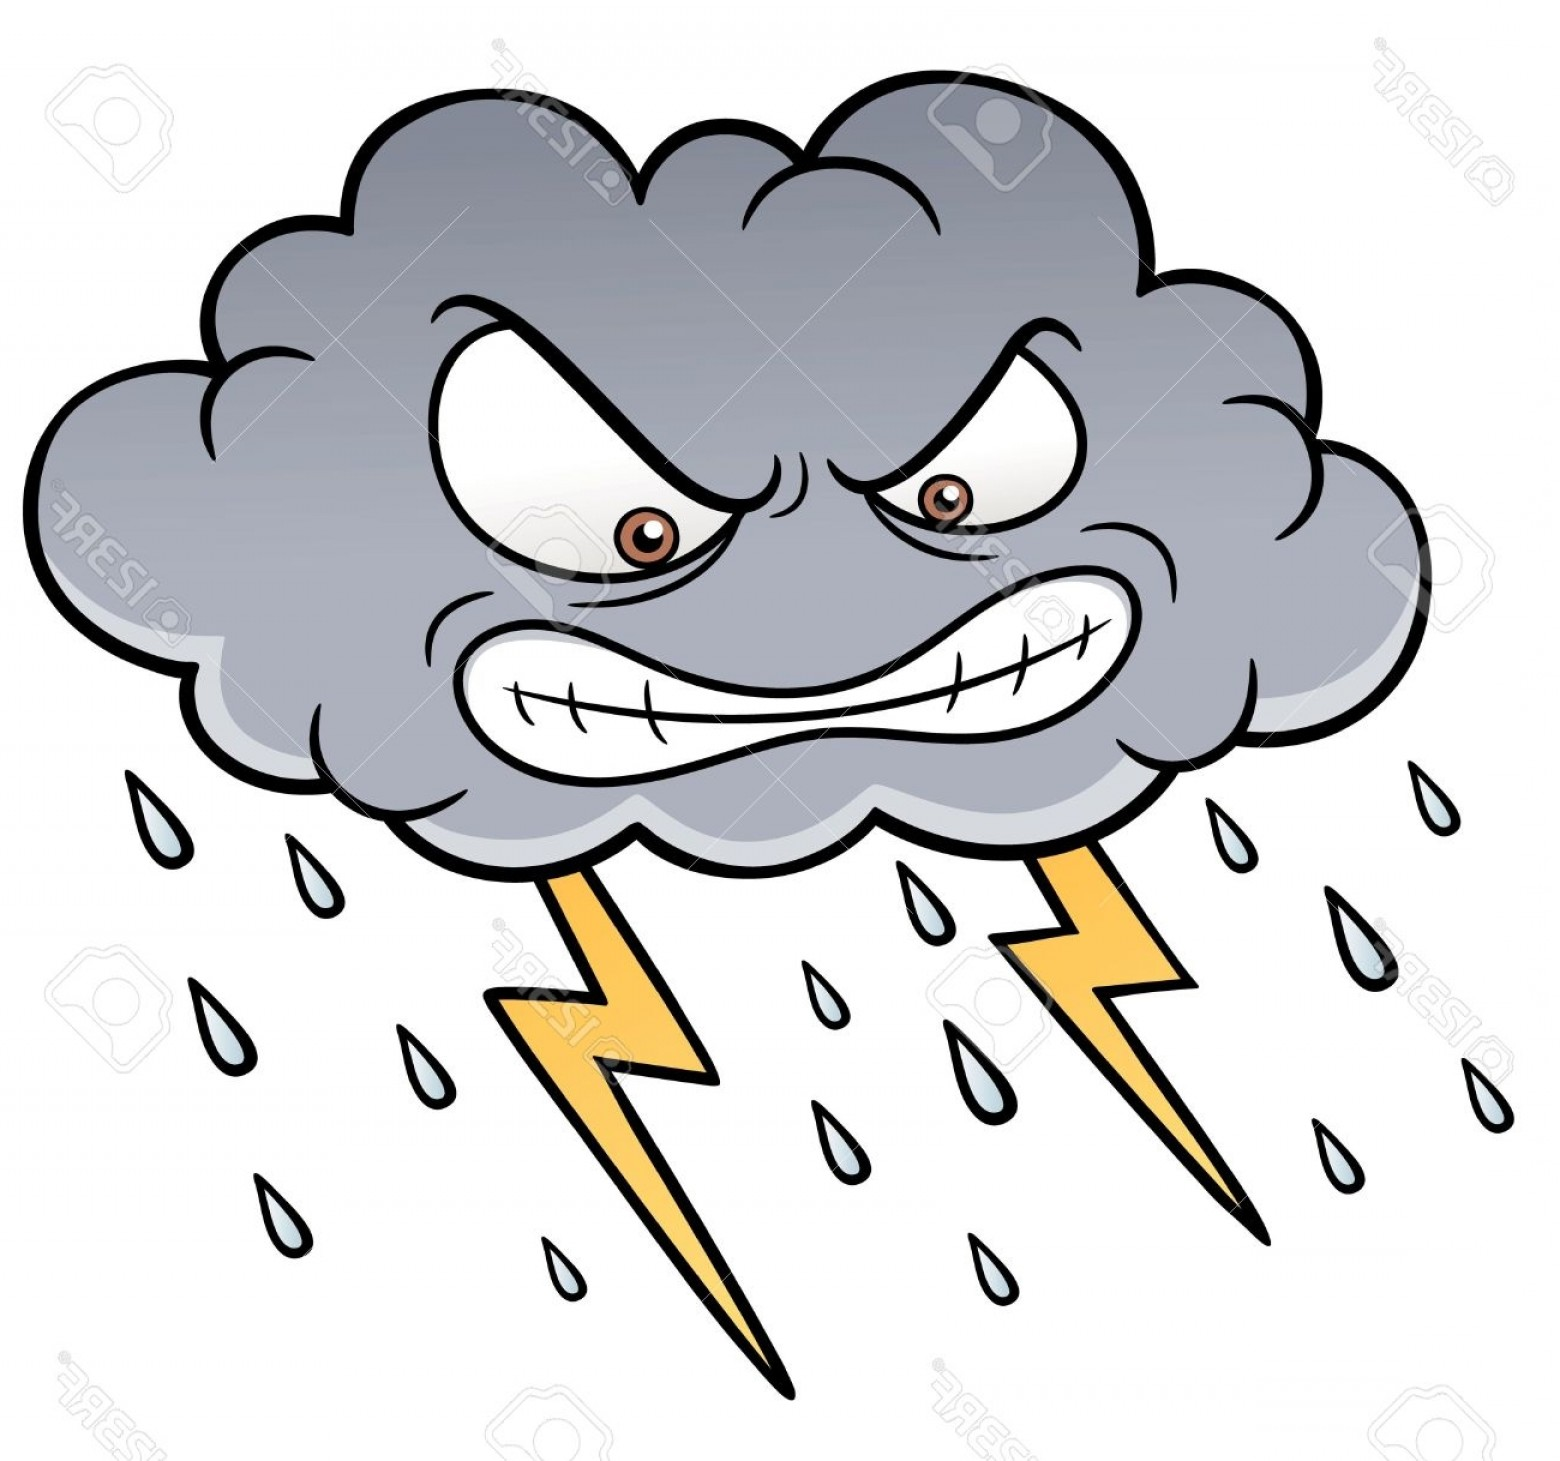 Hurricane Clipart Images.